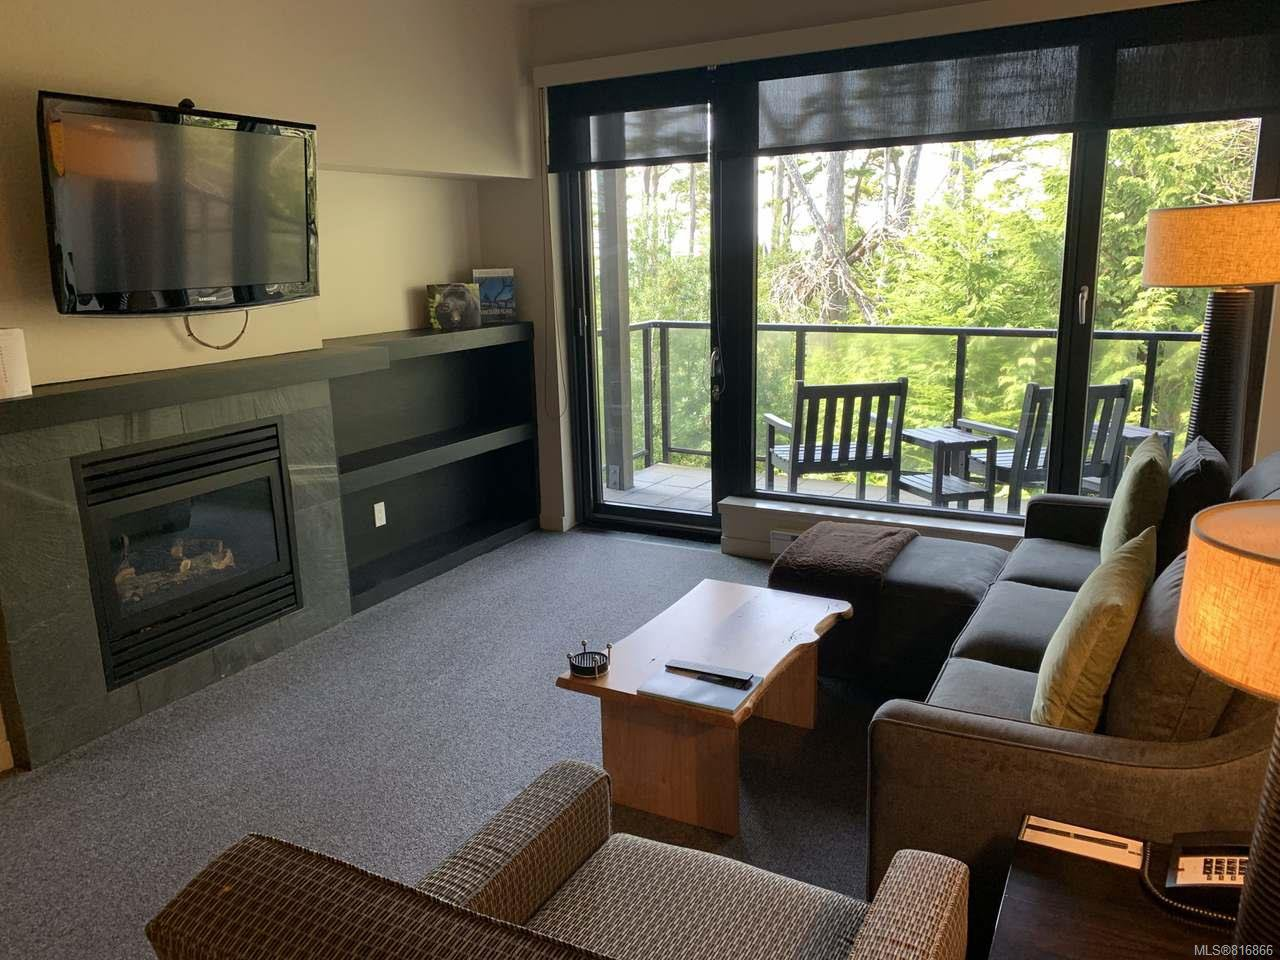 Main Photo: 320 596 Marine Dr in UCLUELET: PA Ucluelet Condo for sale (Port Alberni)  : MLS®# 816866